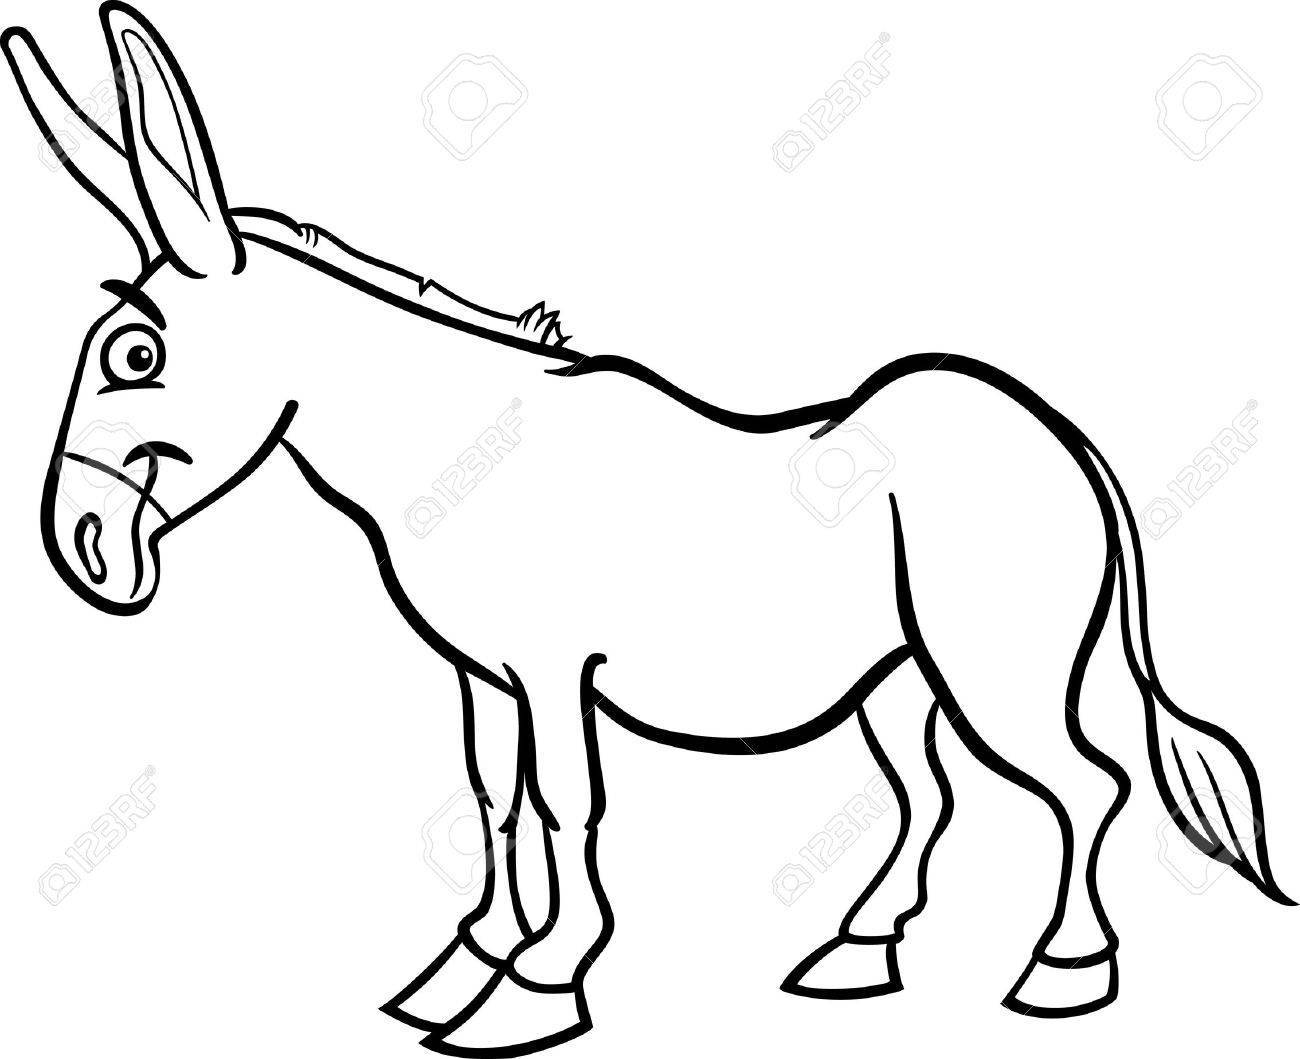 Black and white donkey clipart 4 » Clipart Portal.